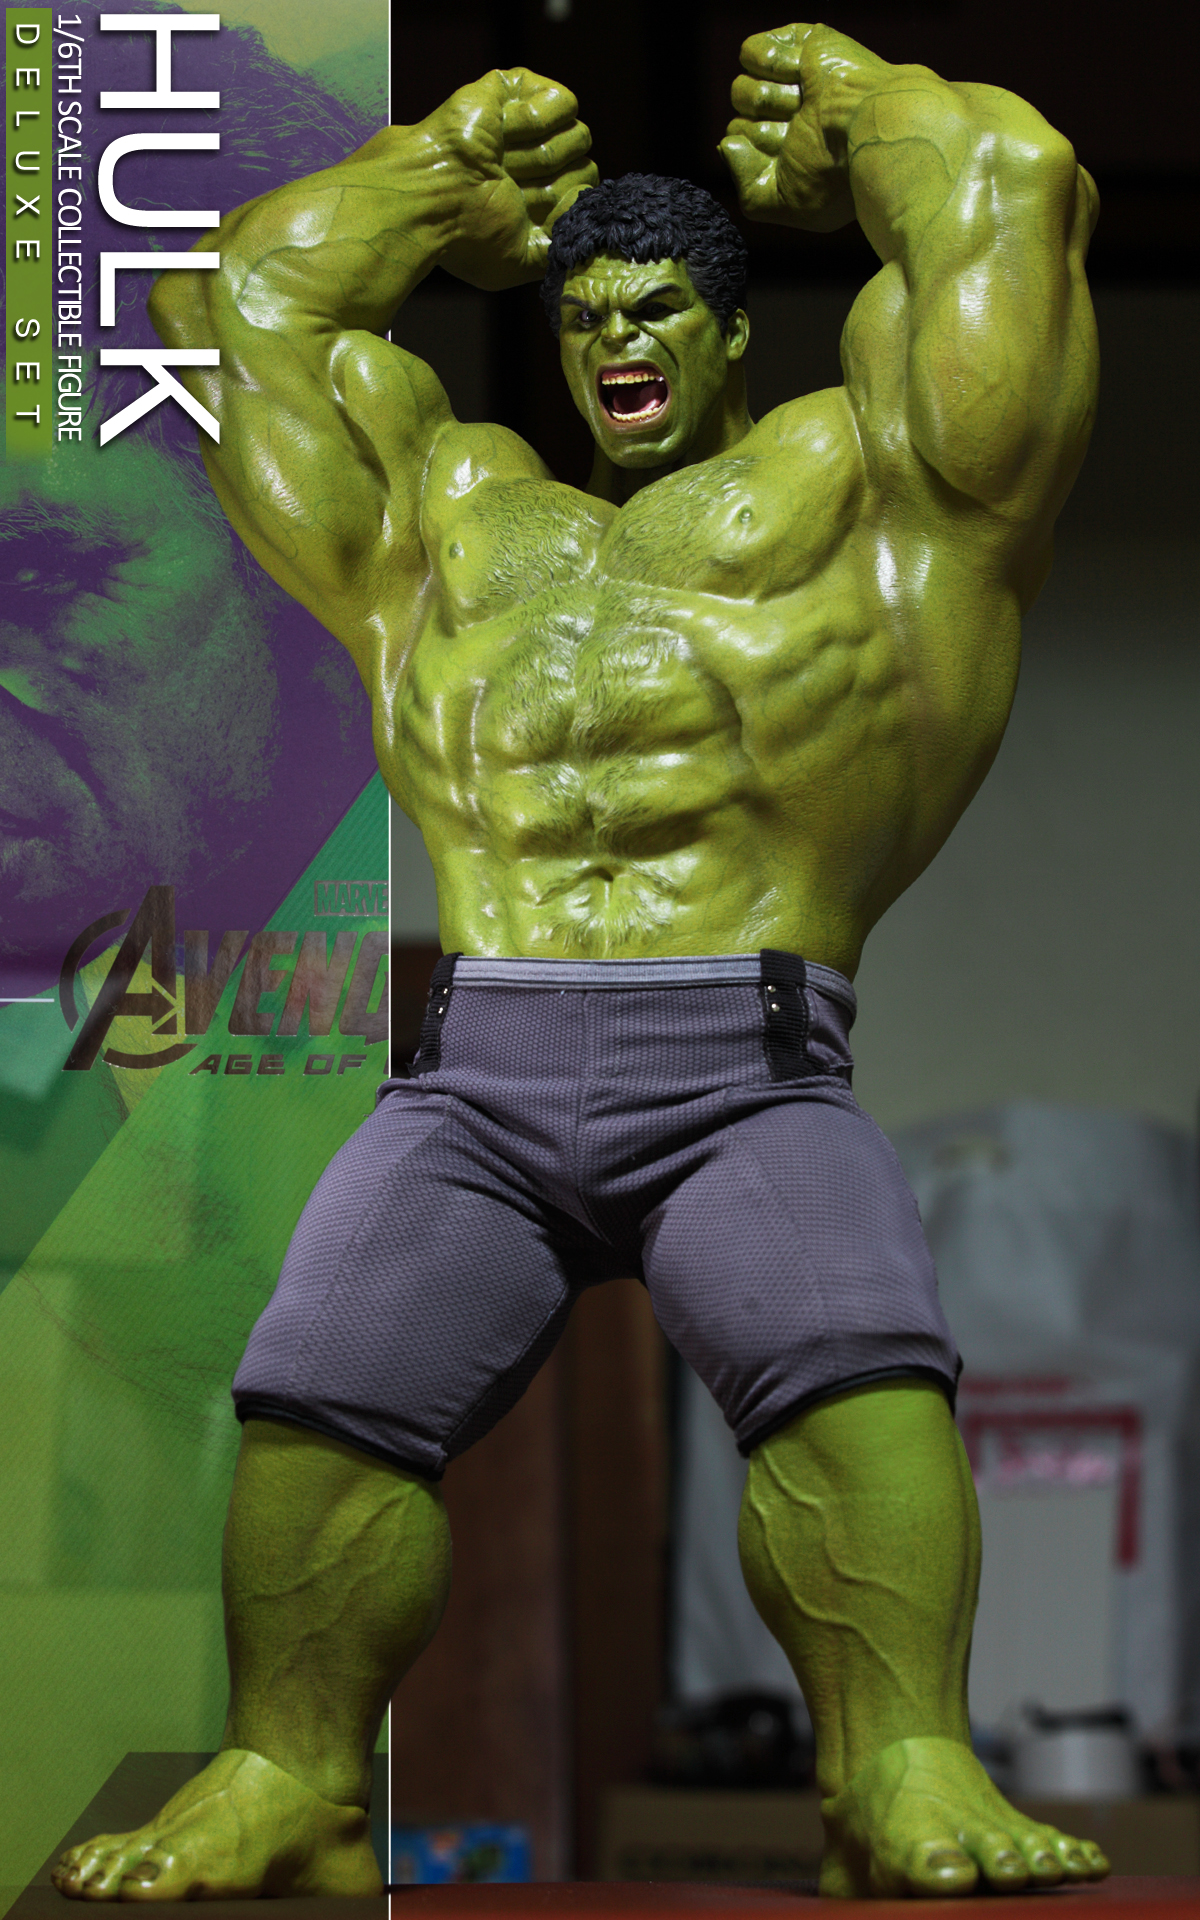 hottoys-avengers-age-of-ultron-hulk-picture02